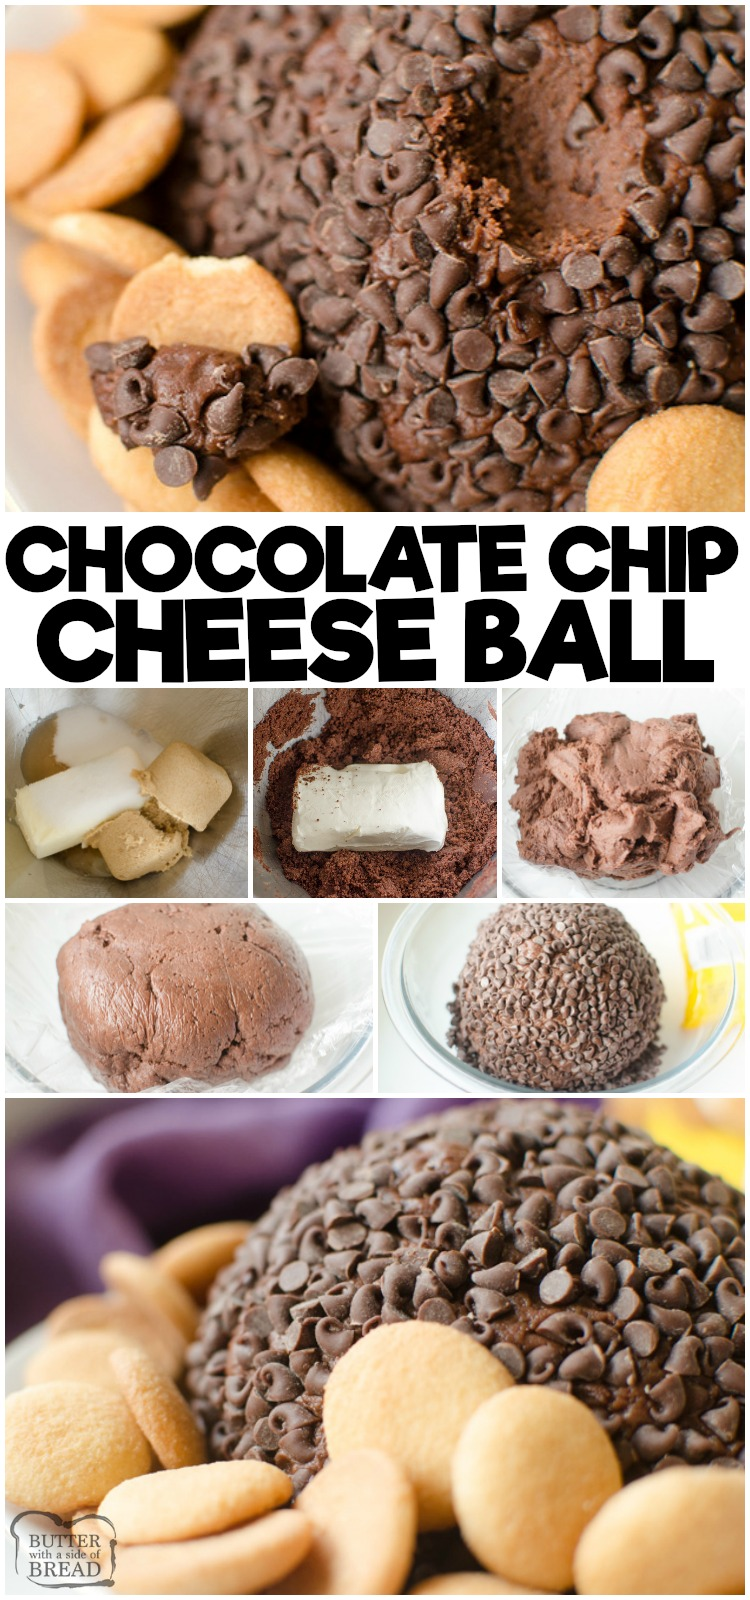 Double Chocolate Chip Cheese Ball is a rich, twice the chocolate cheesecake turned into a sweet cheese ball! The rich chocolate batter combined with the tangy cream cheese then rolled in mini chocolate chips makes this a rich and delicious appetizer or dessert!